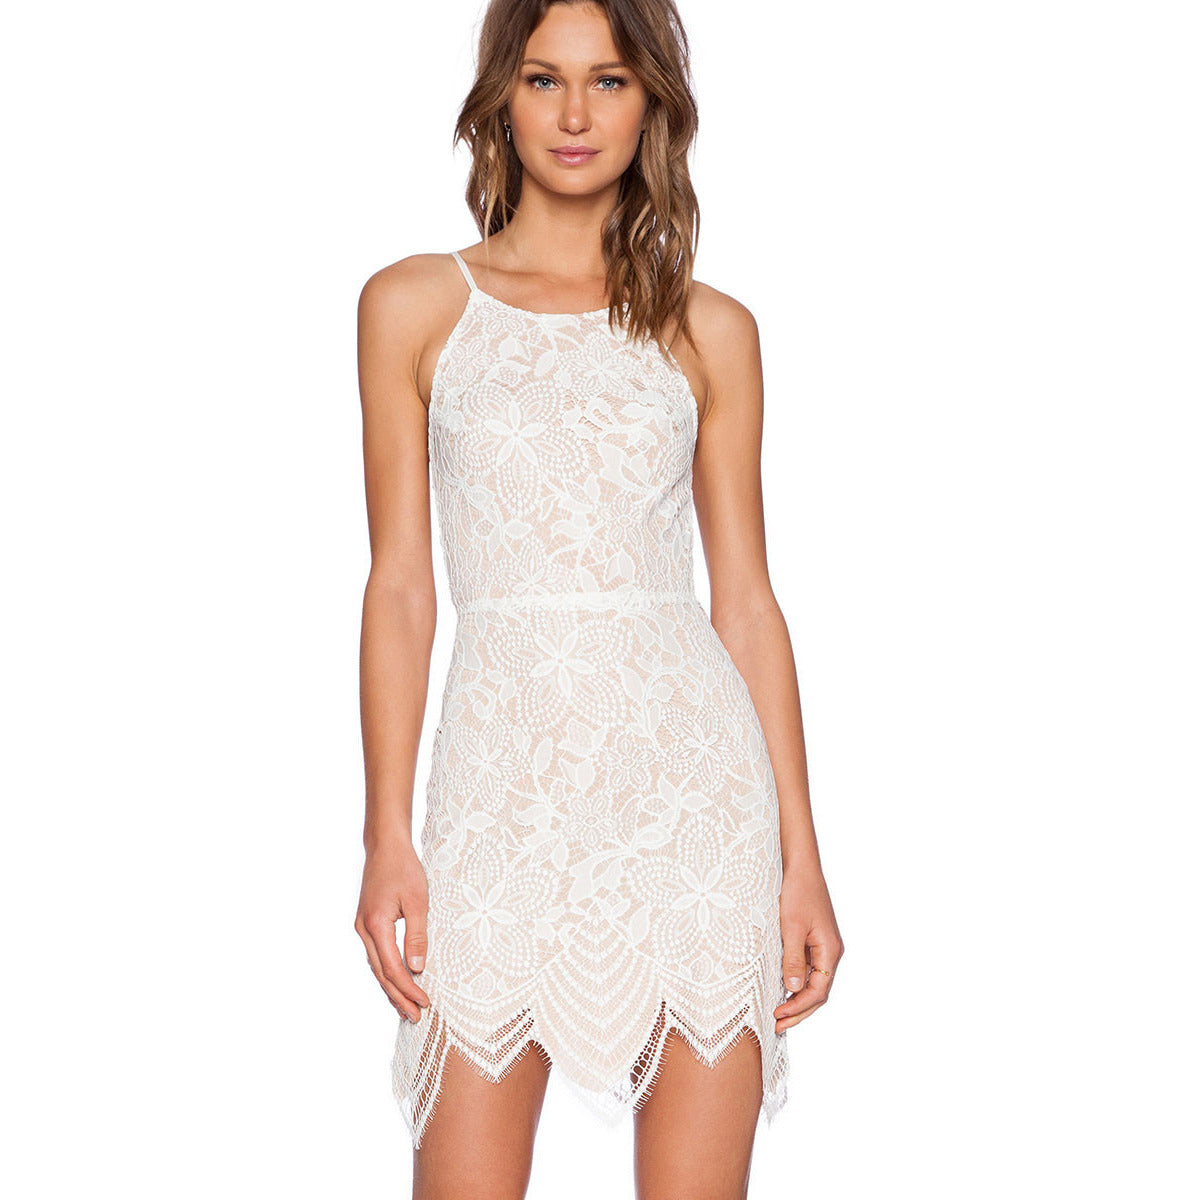 Off White Lace Backless Mini Dress LAVELIQ - LAVELIQ - 1